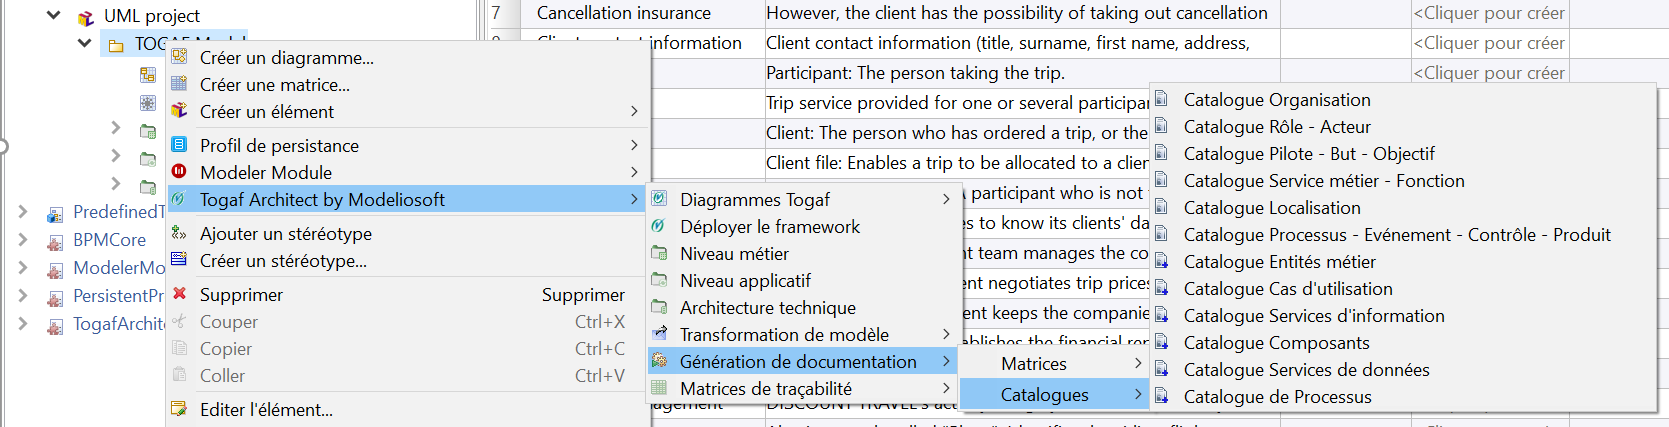 08_tutorial-togaf-generation-de-documentation-catalogues-08.PNG